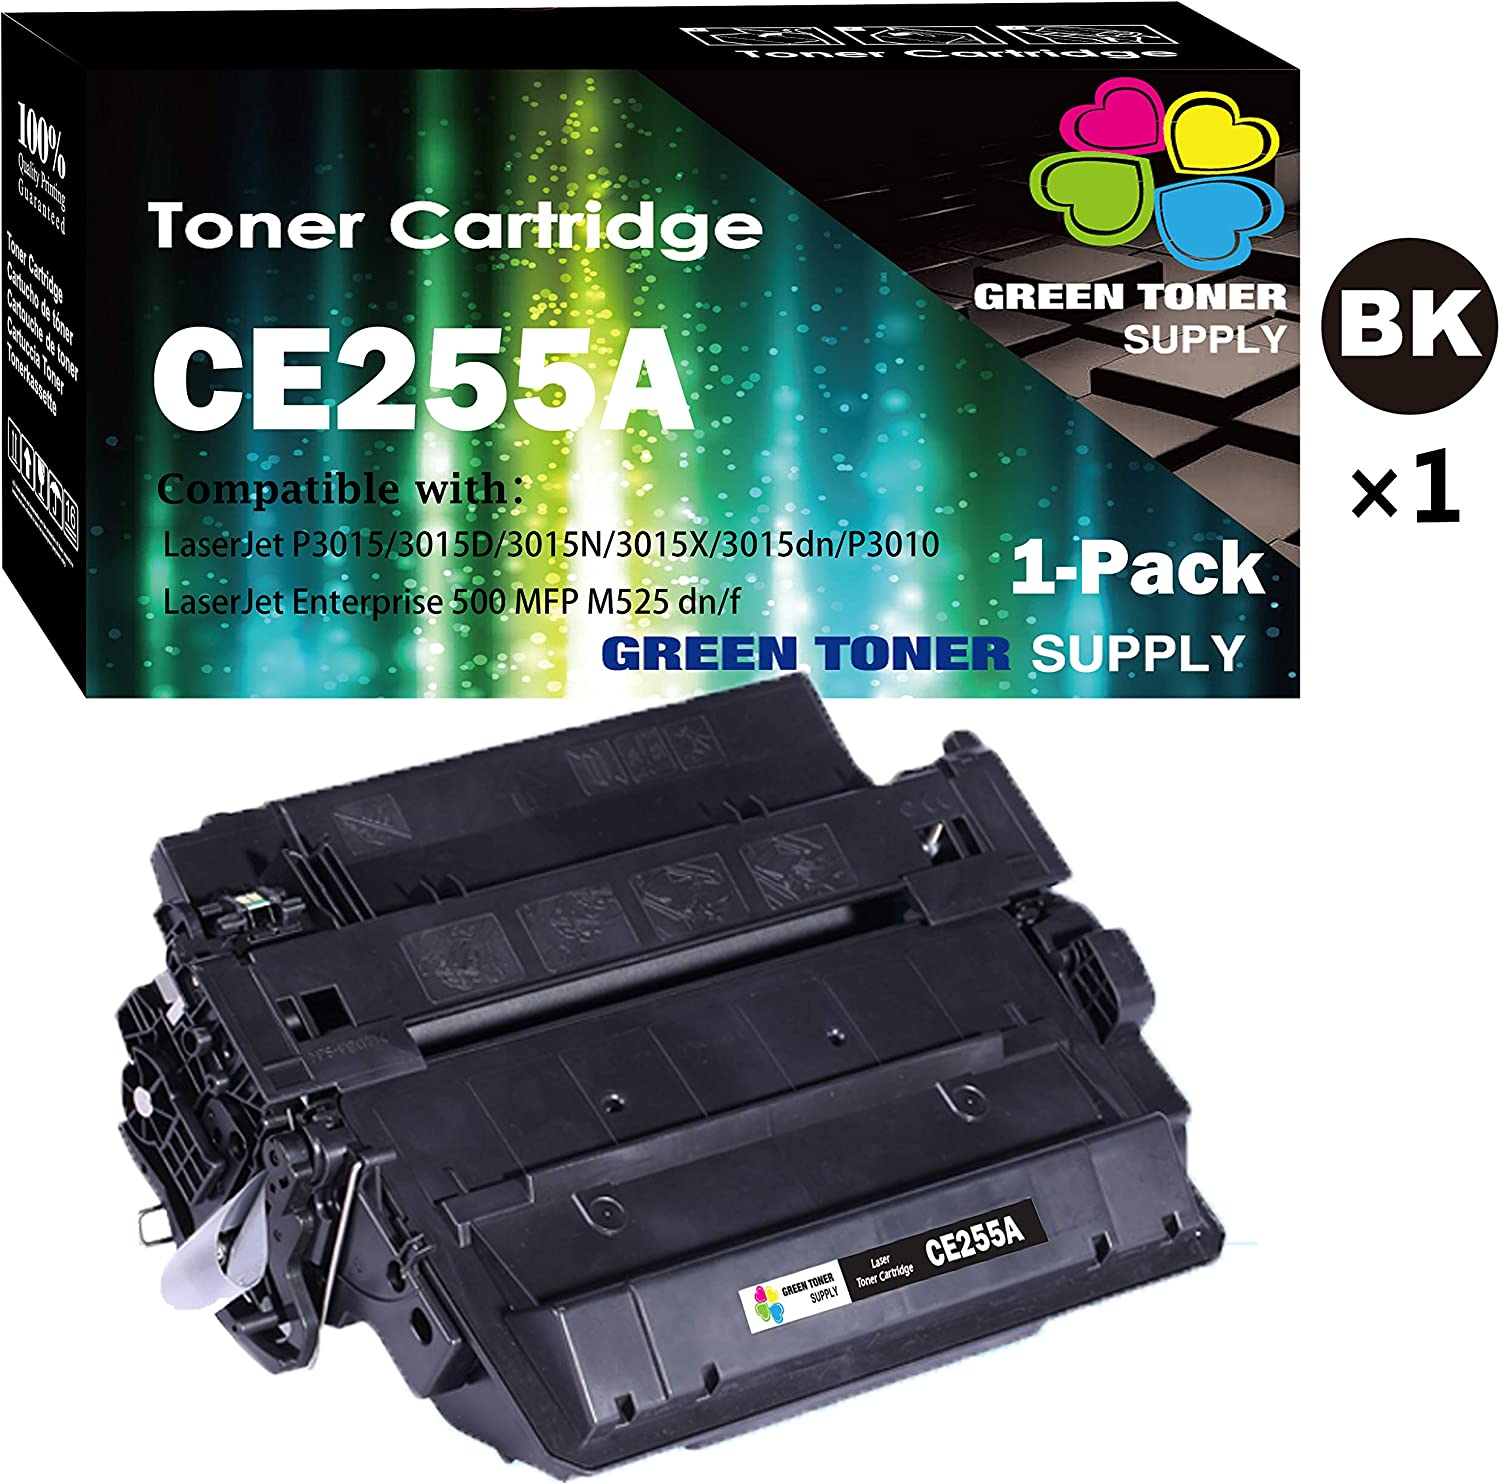 (1-Pack, Black, 6,000 Pages) GTS Compatible HP 55A 255A CE255A Toner Cartridge 55X Used for HP Laserjet Pro 500 MFP M521DN M525DN M521DW M525f P3015dn P3010 P3015x P3015 P3015d P3015n P3016 Printer